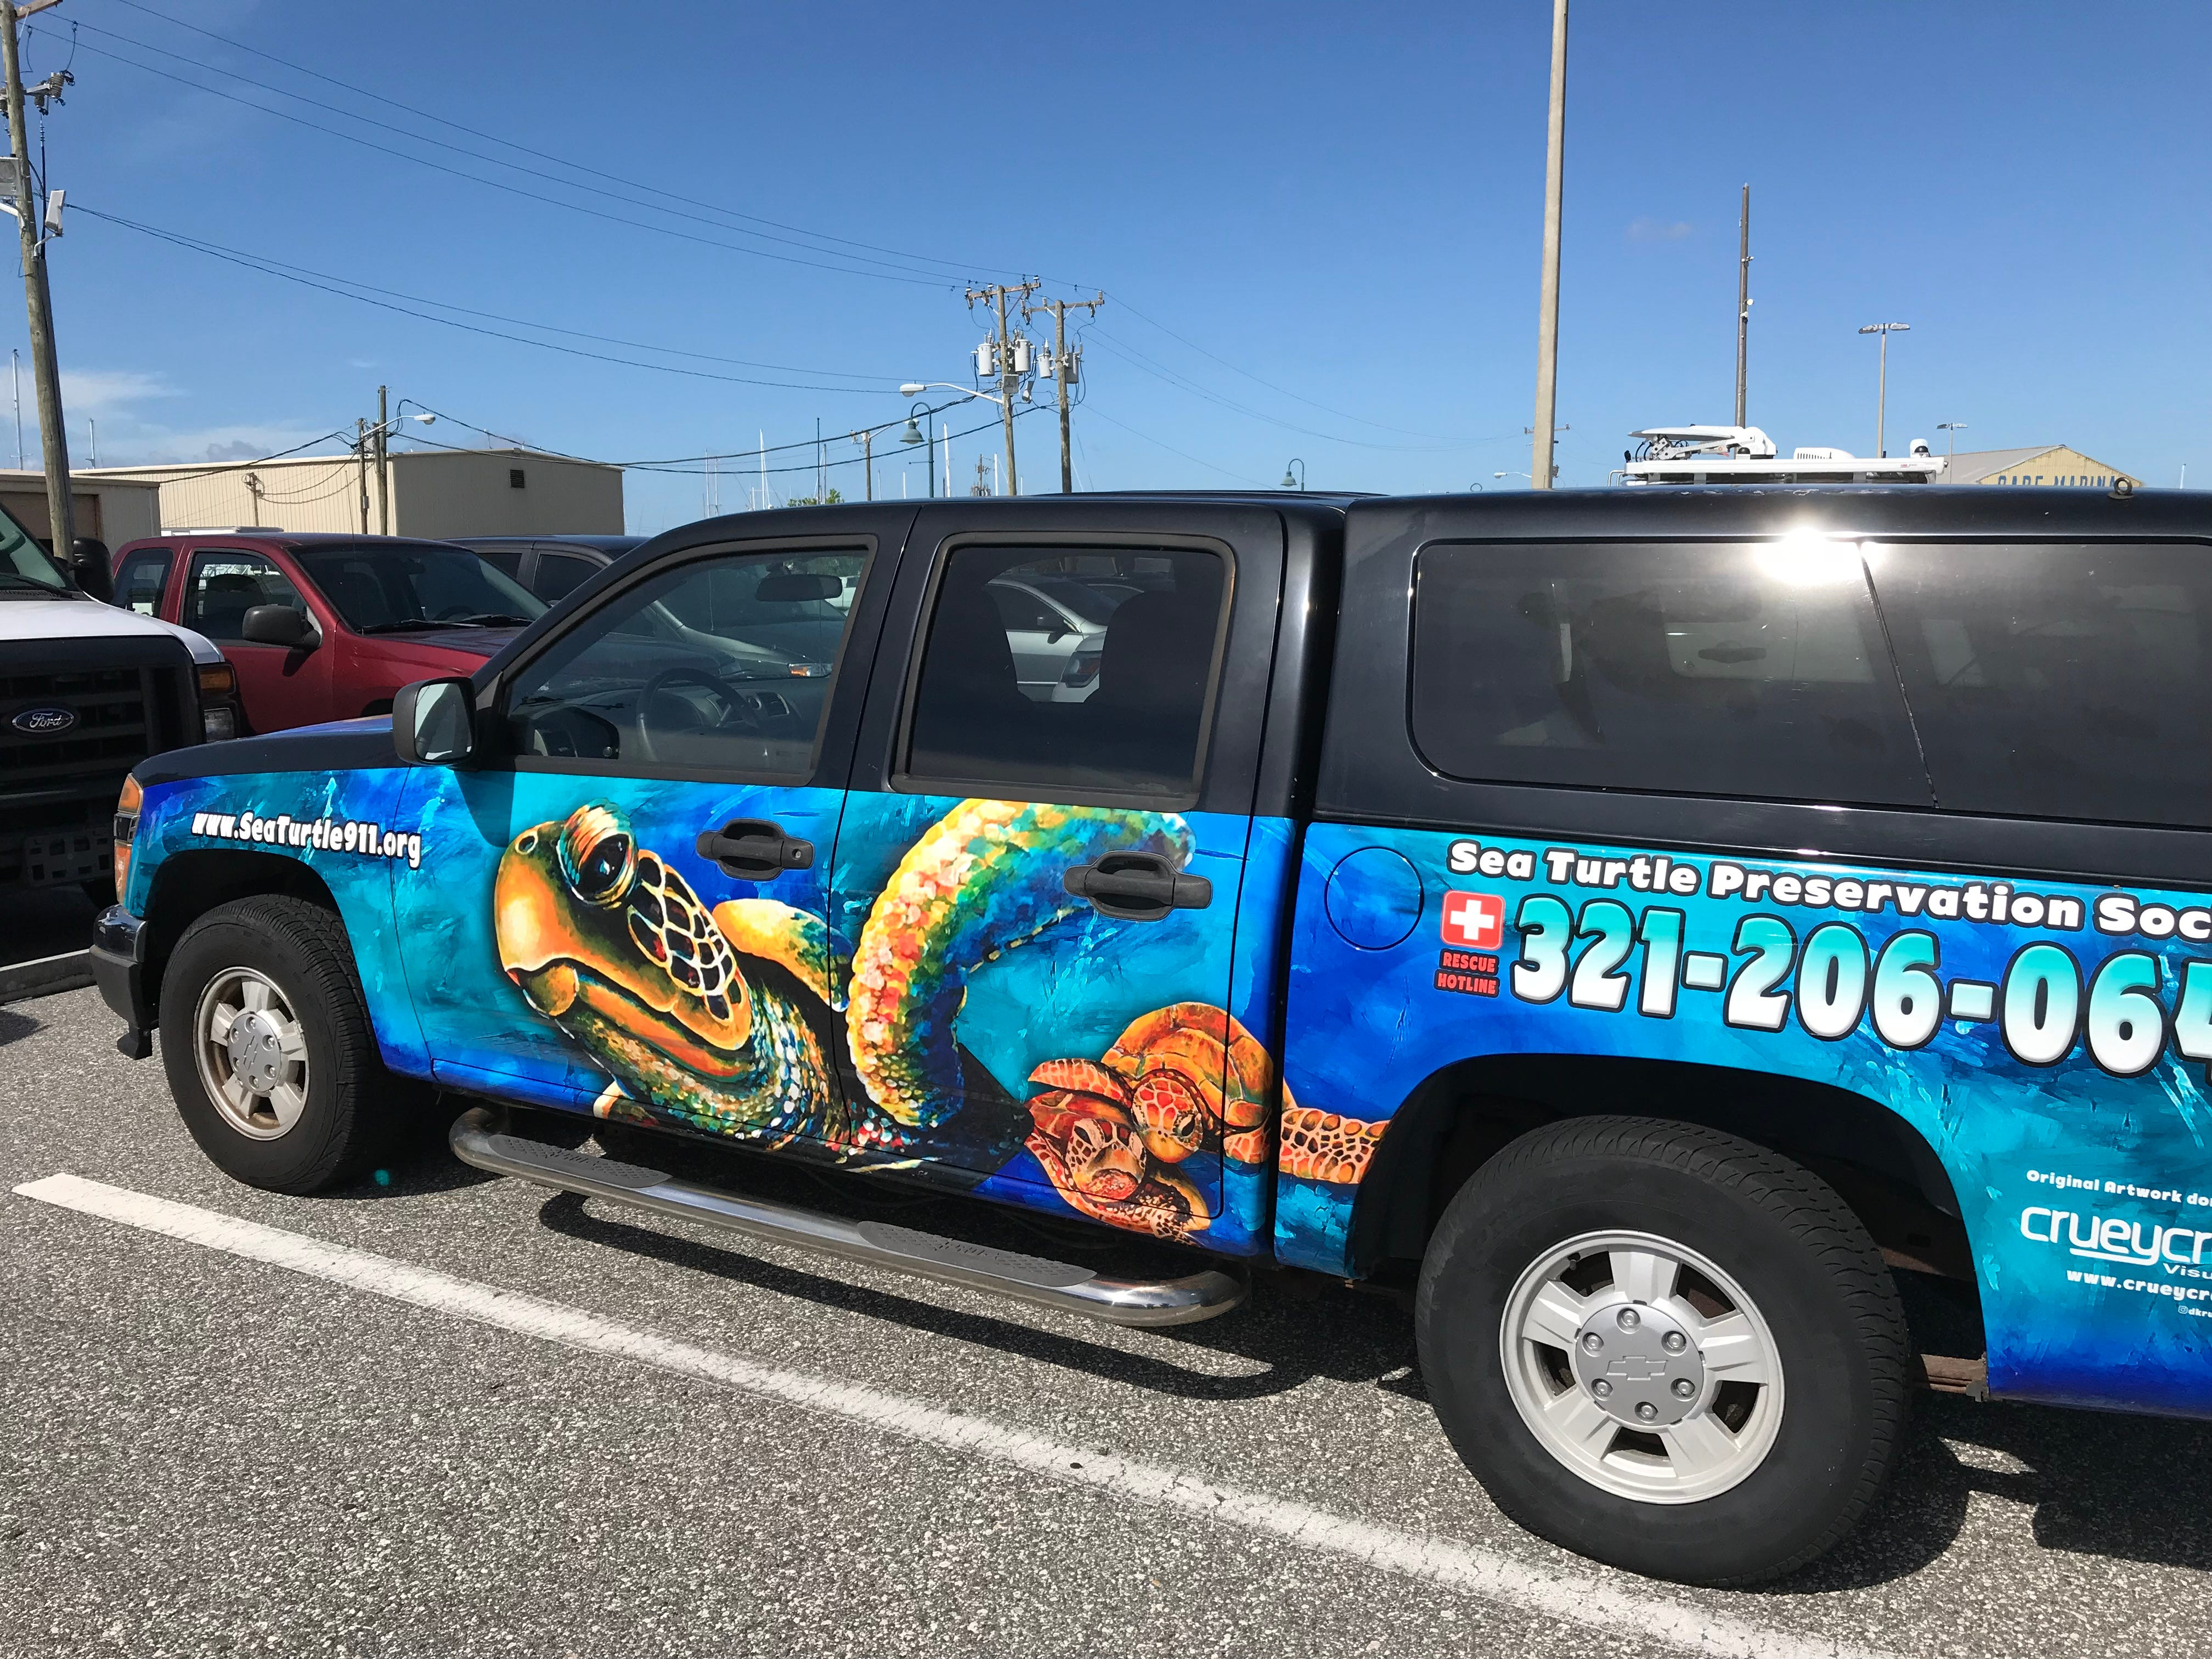 f851ea6d-ccb5-4612-88c5-1323b74feea4-Turtle1 Port Canaveral expands sea turtle rescue efforts